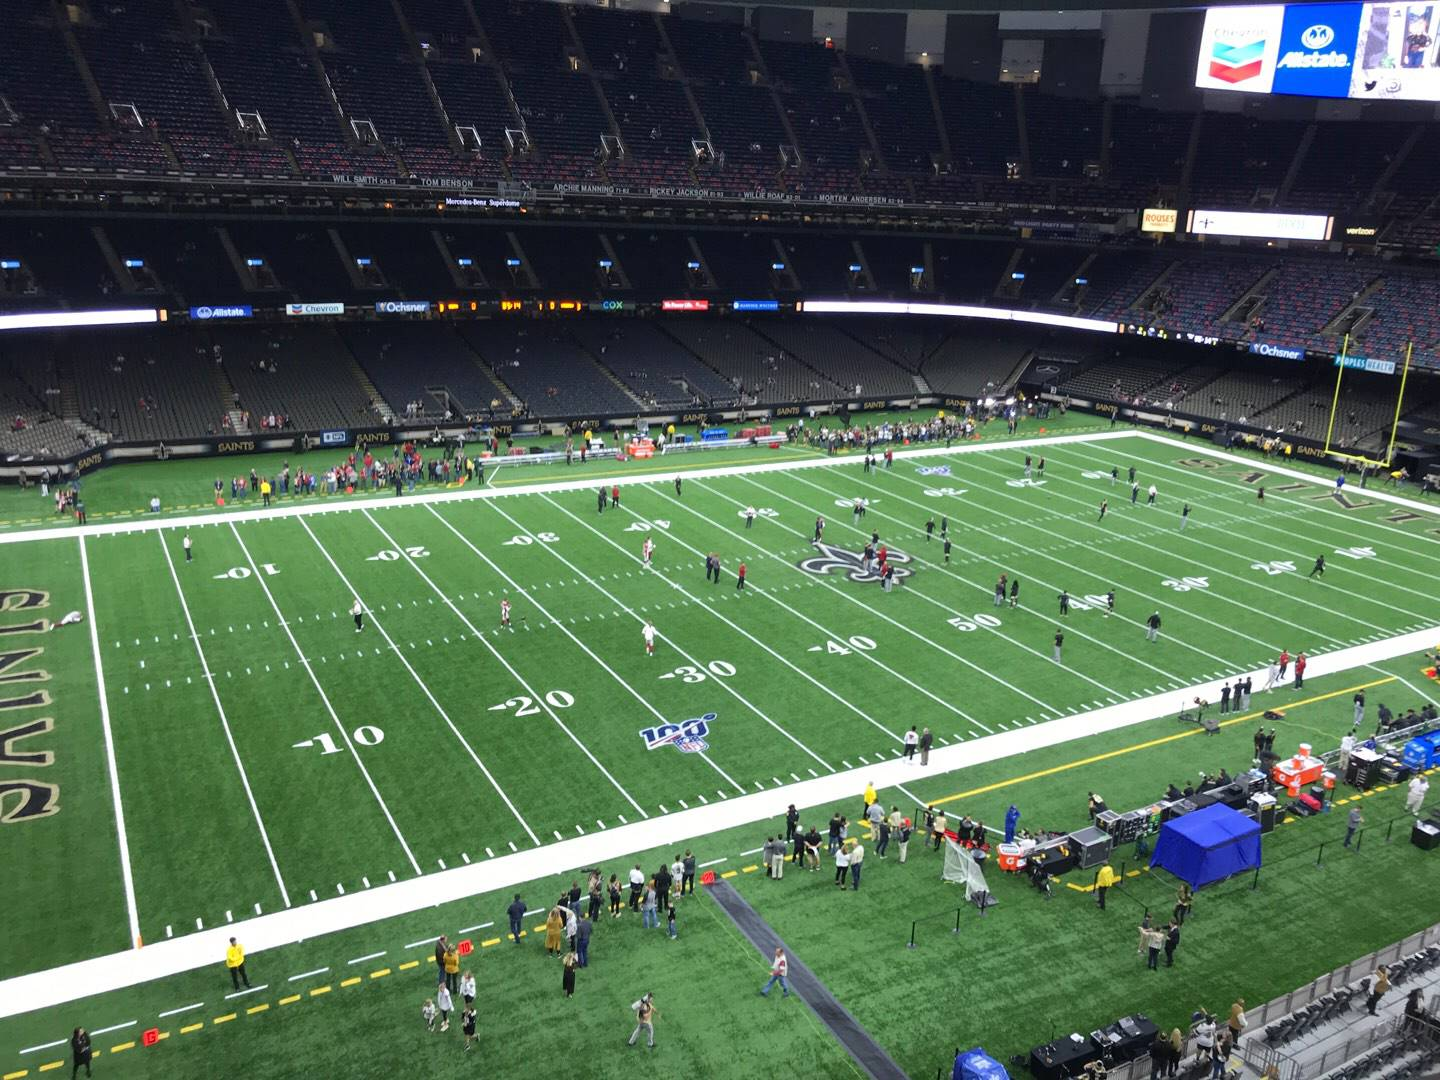 Mercedes-Benz Superdome Section 554 Row 2 Seat 4